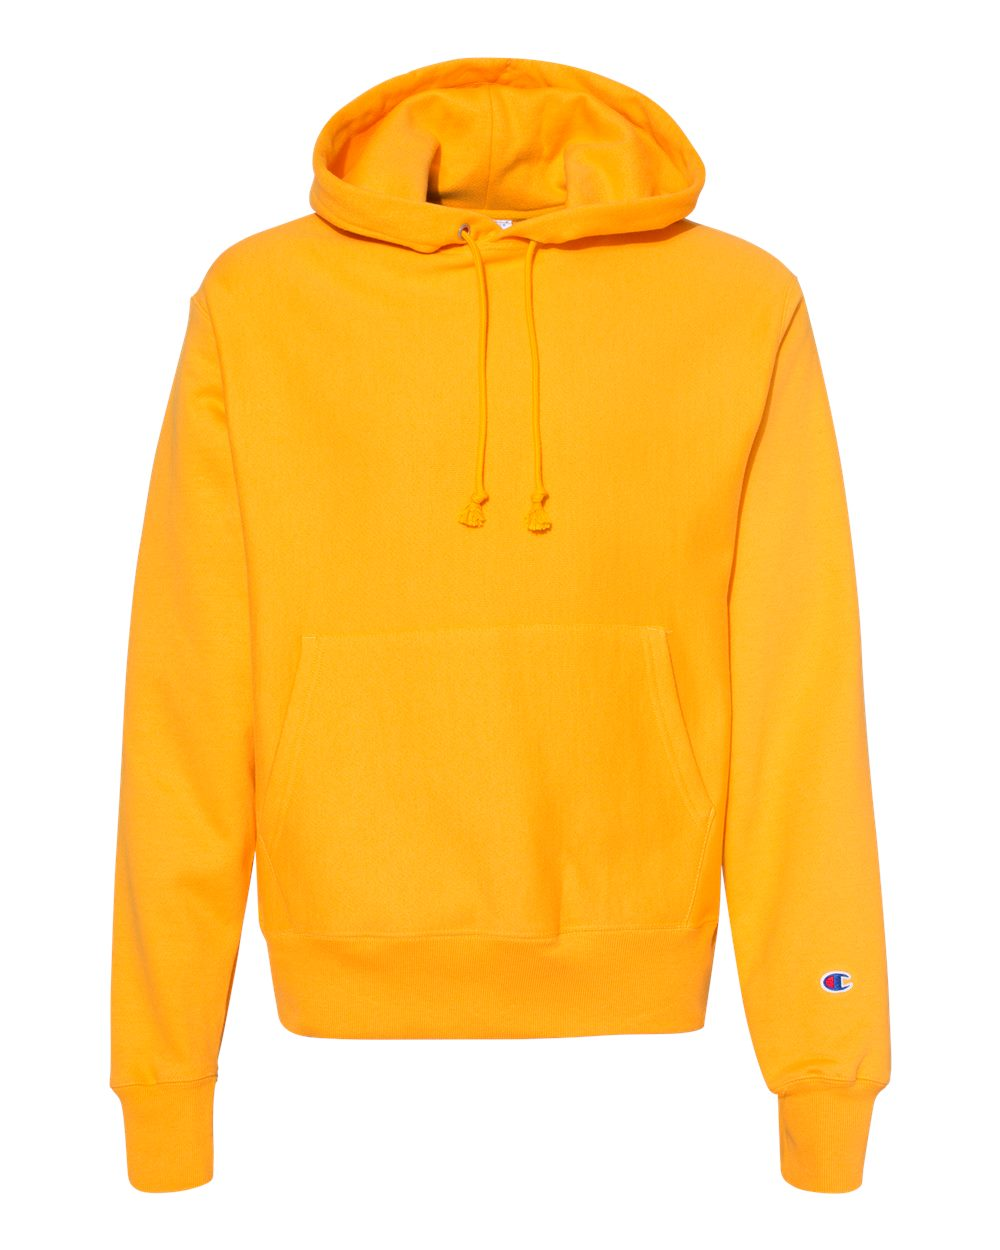 Champion-Mens-Reverse-Weave-Hooded-Pullover-Sweatshirt-S101-up-to-3XL thumbnail 12